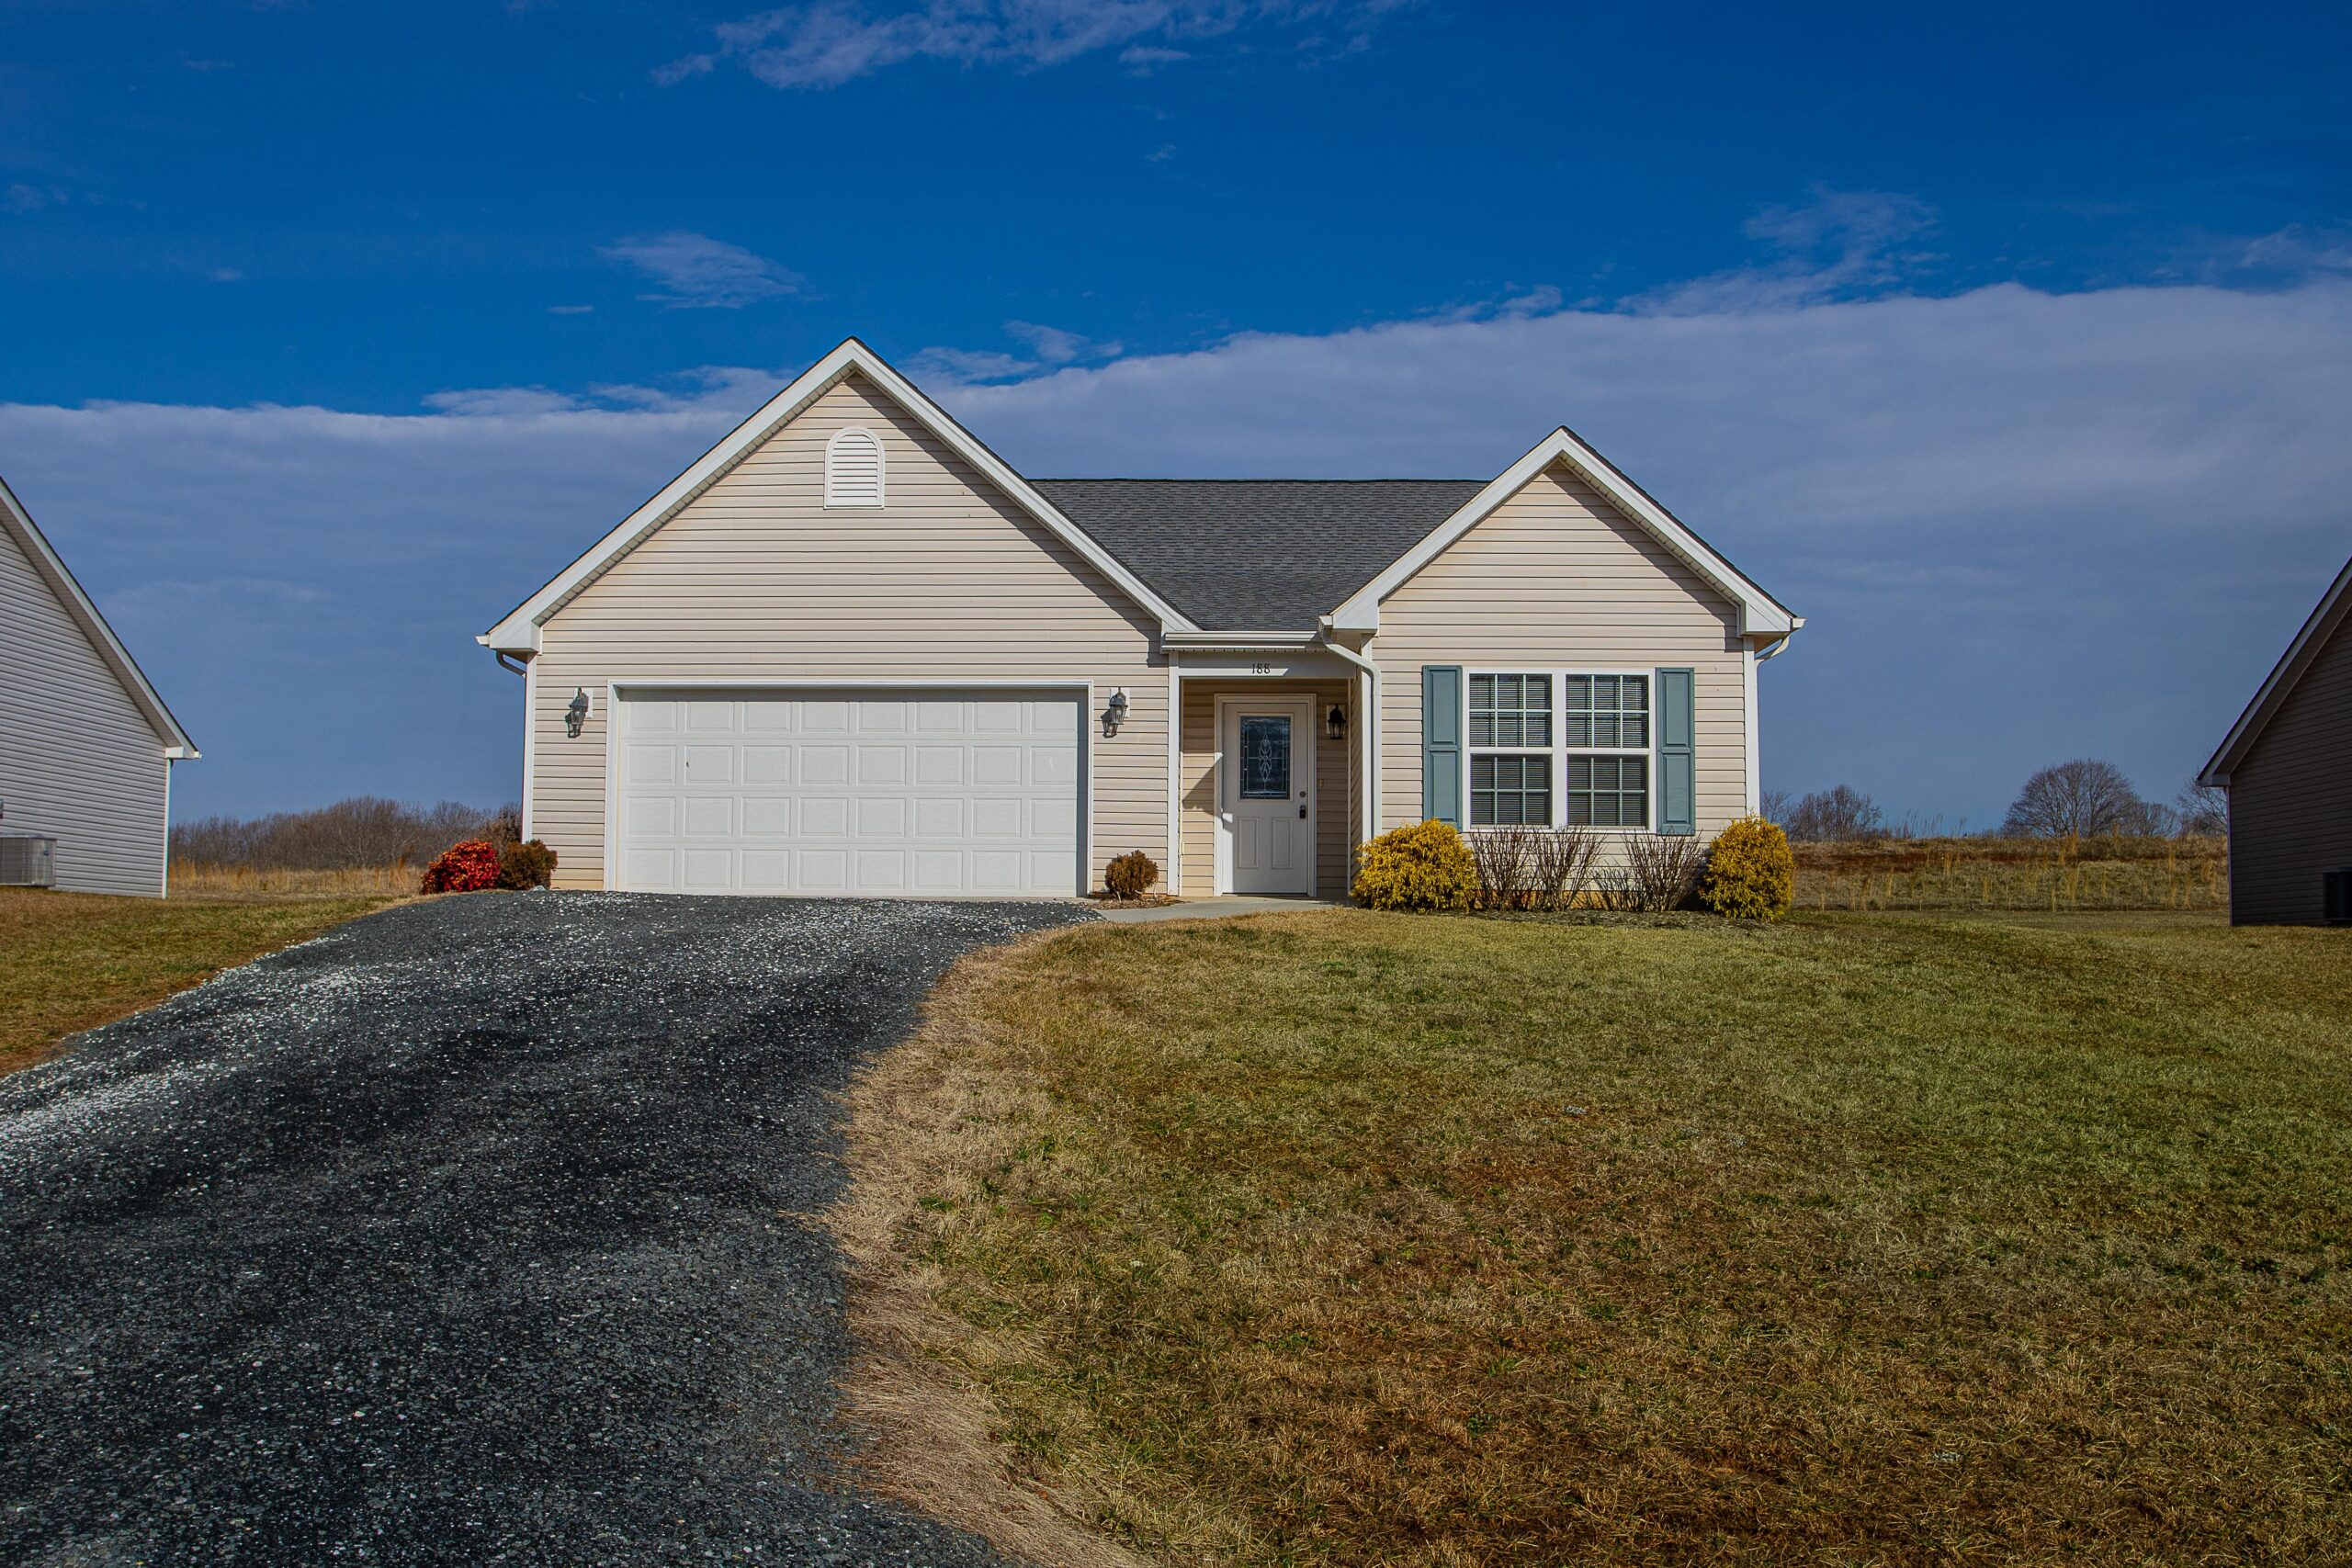 Home for Sale Near Lynchburg, 188 Stratford Place